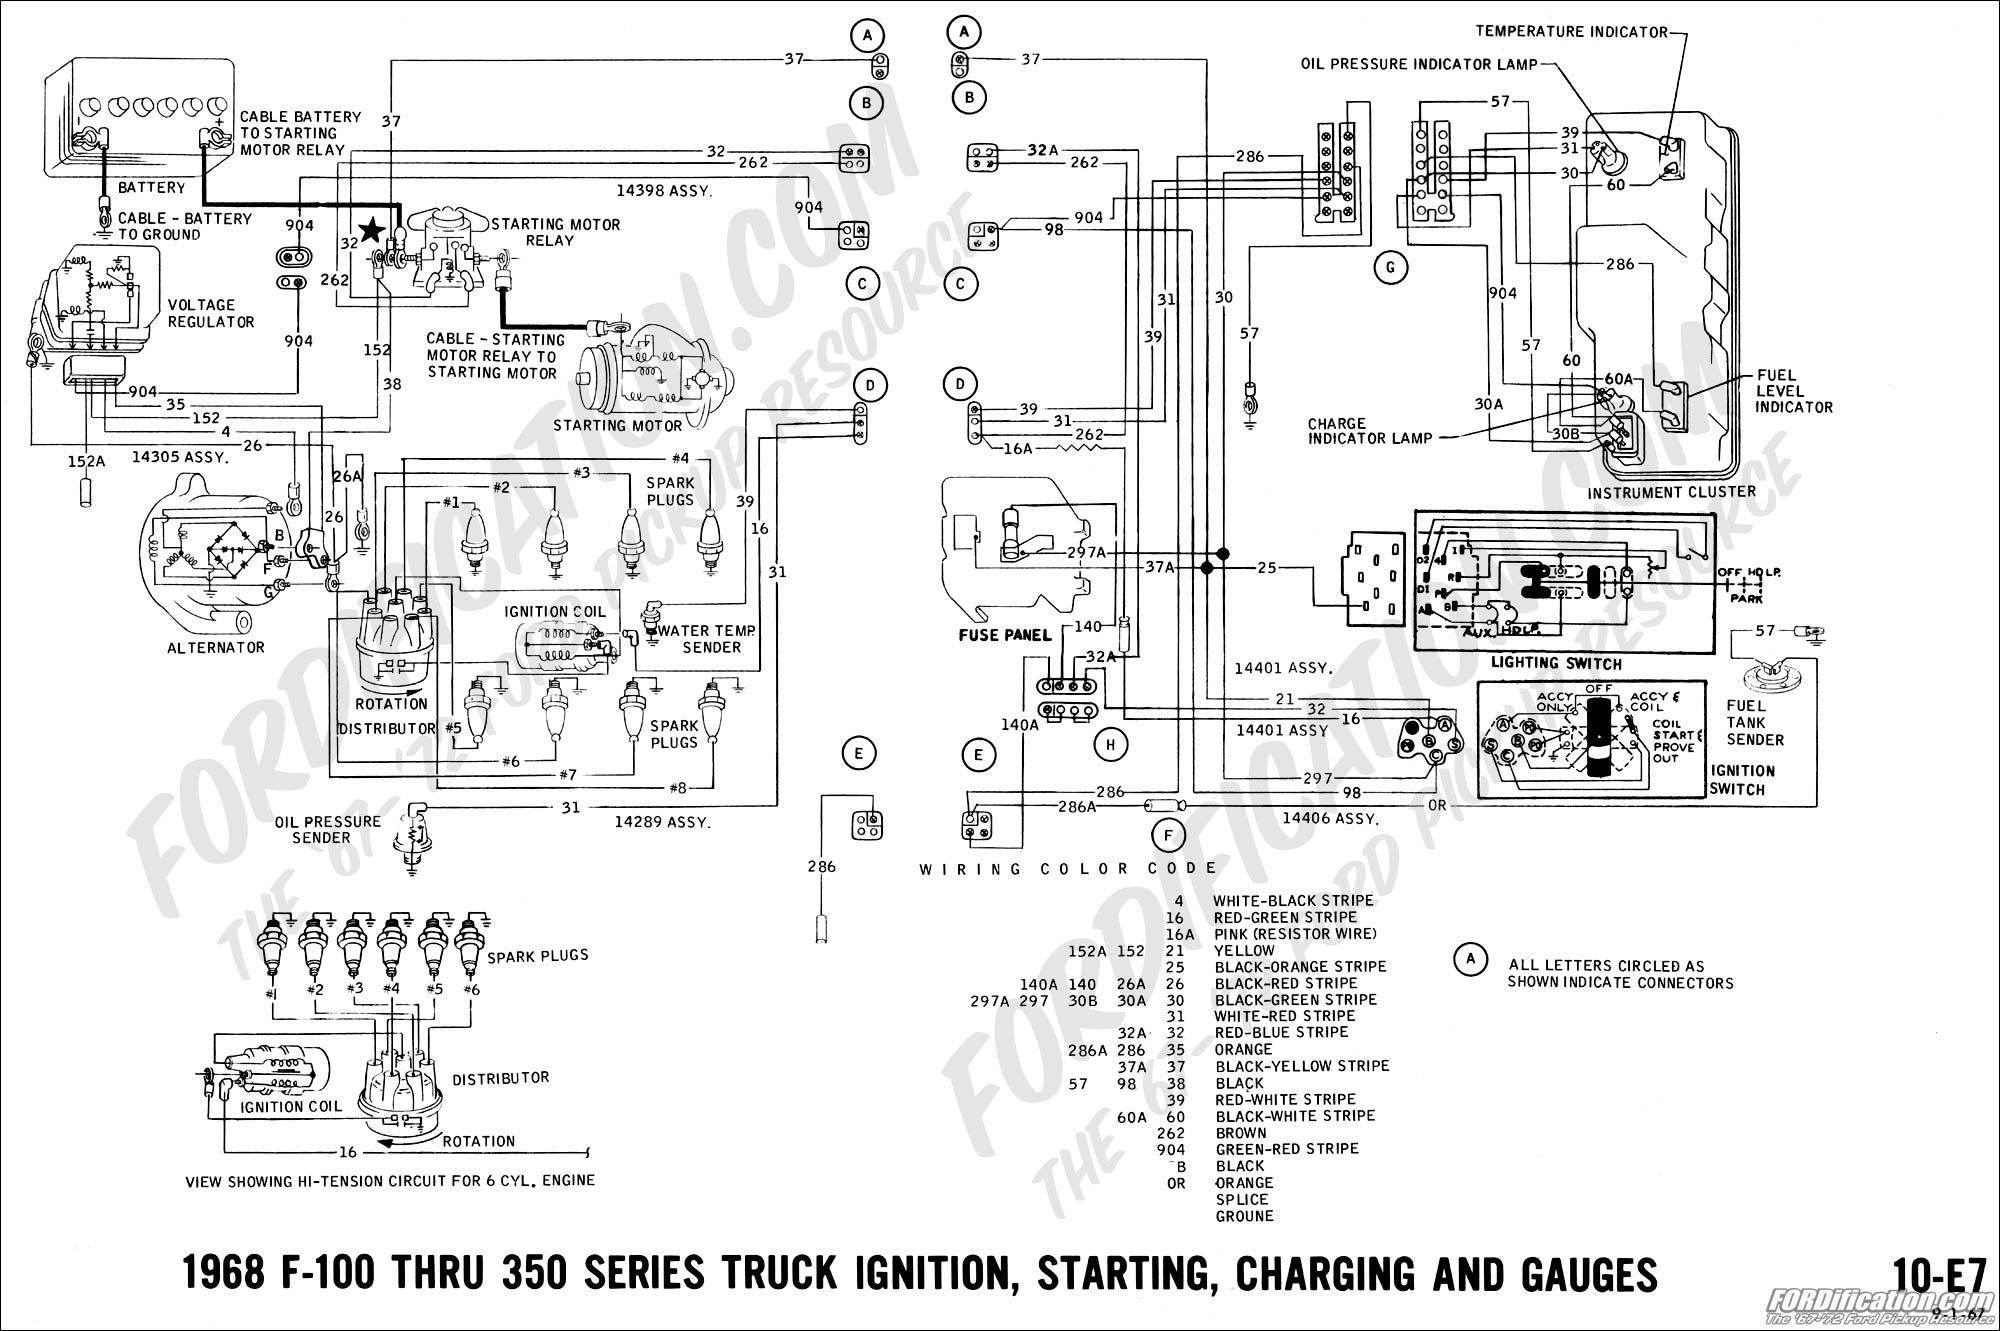 1968 f100 wiring diagram another blog about wiring diagram u2022 rh ok2  infoservice ru lincoln ranger